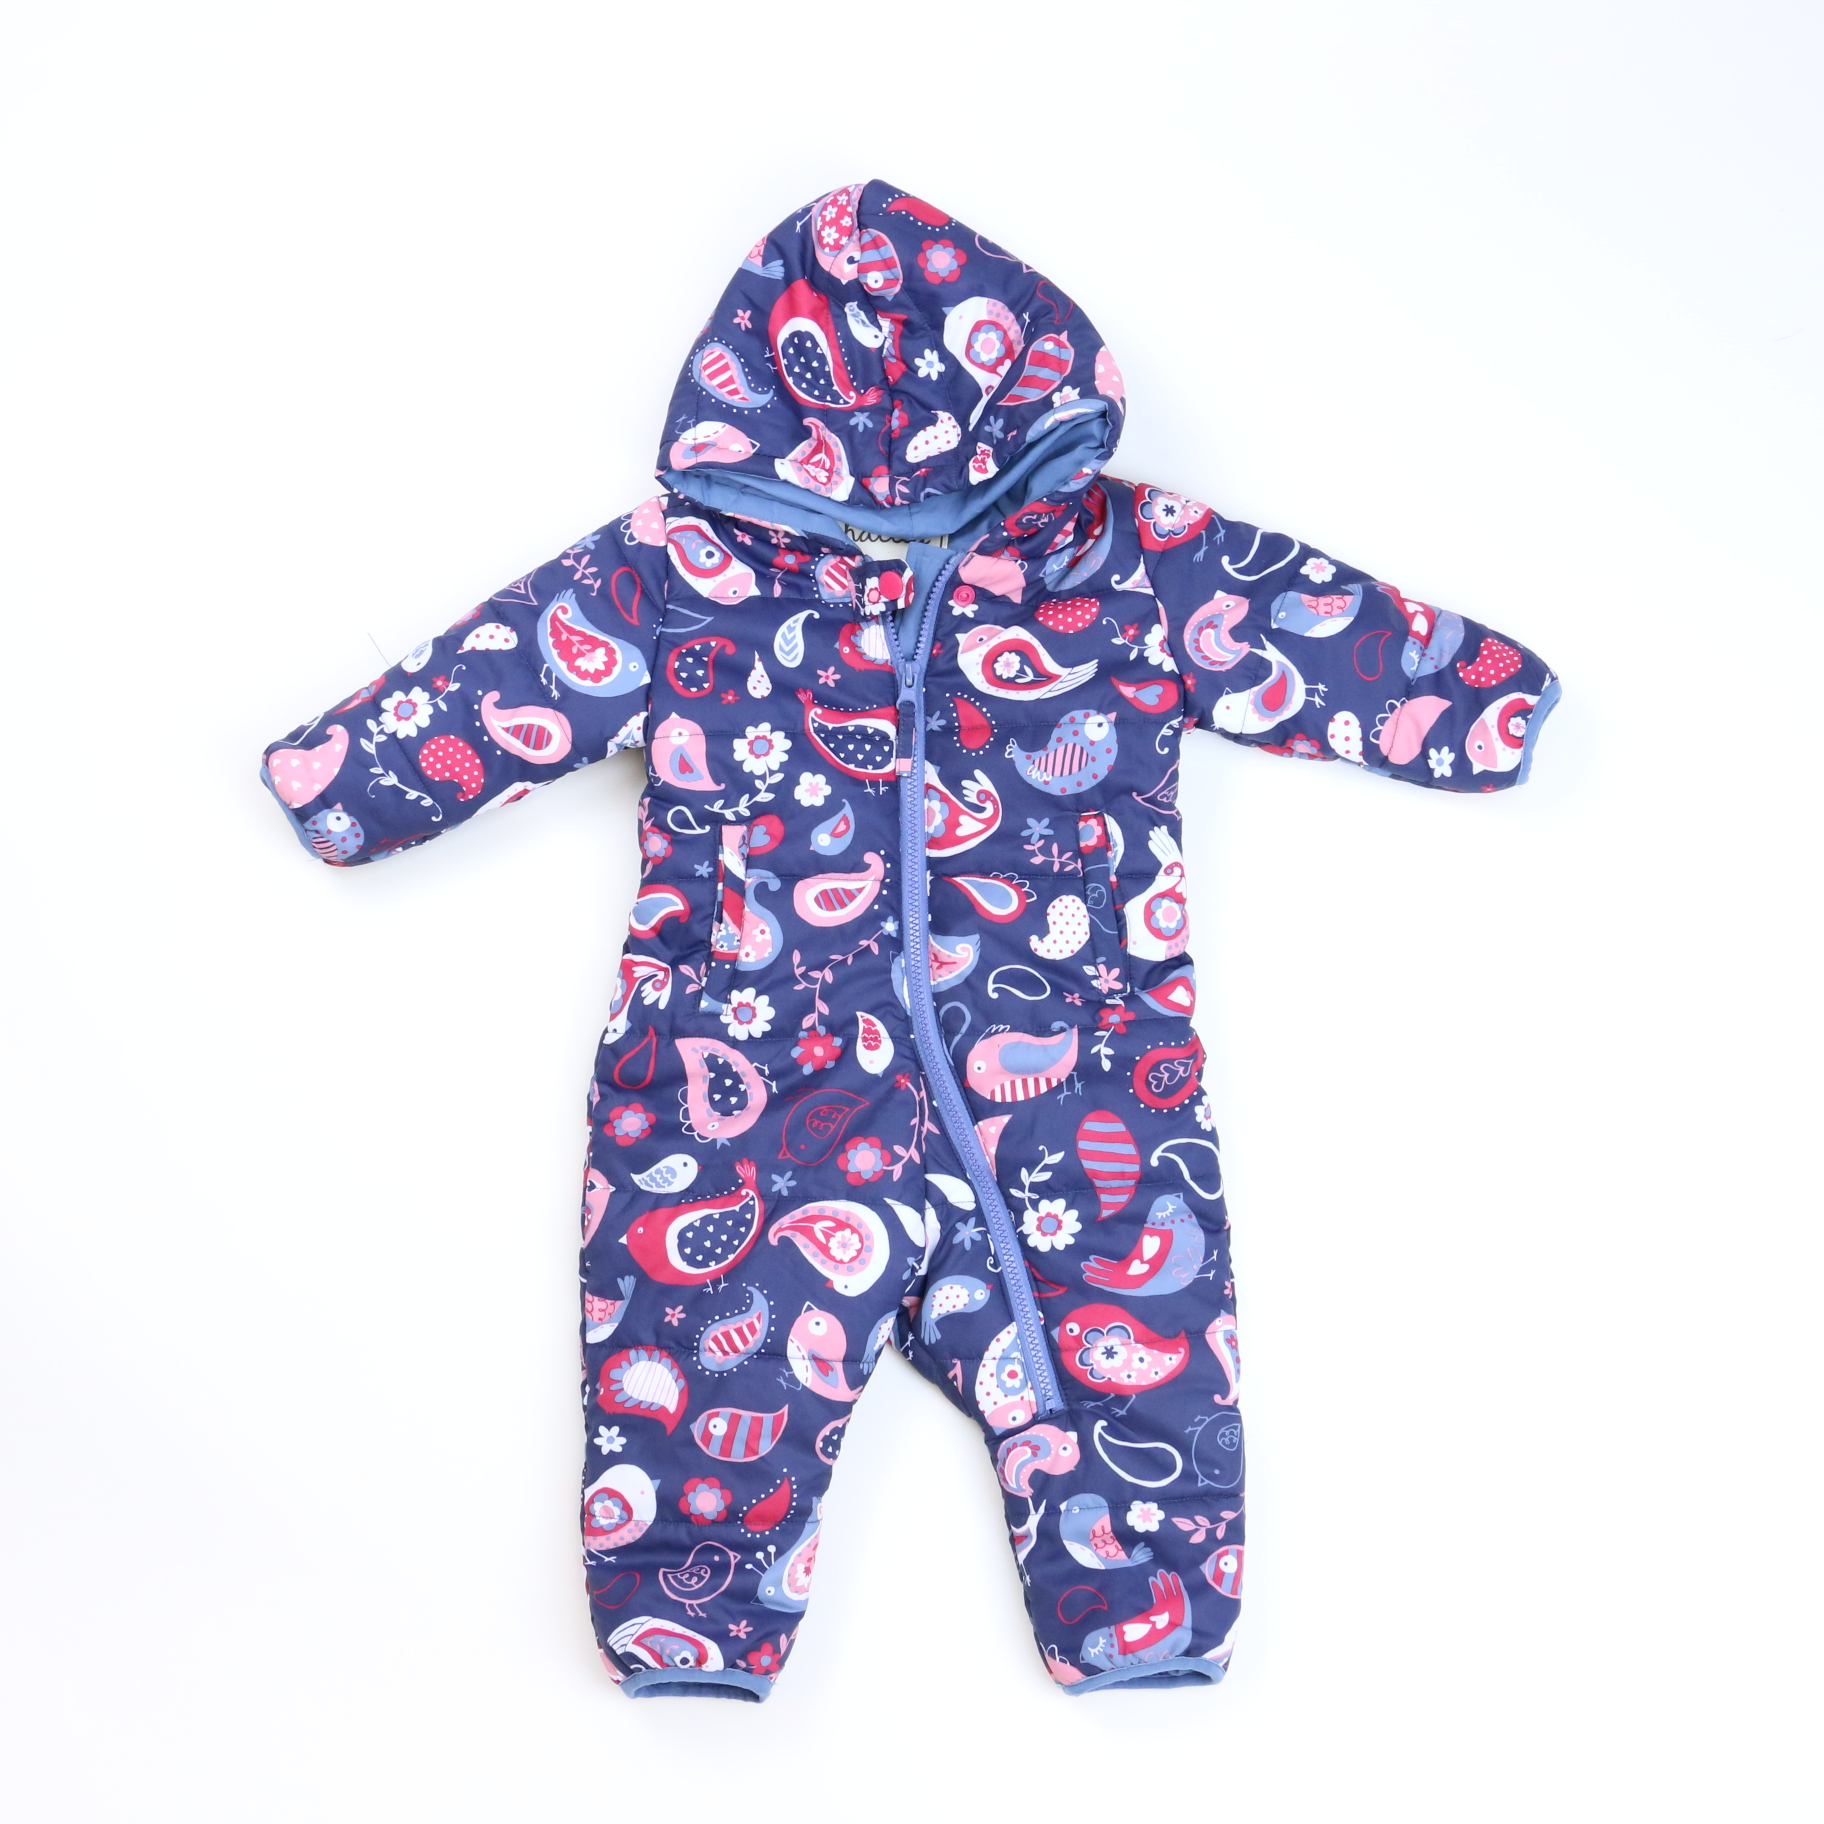 4e833a004 Snowsuit size: 12-18 Months - The Swoondle Society